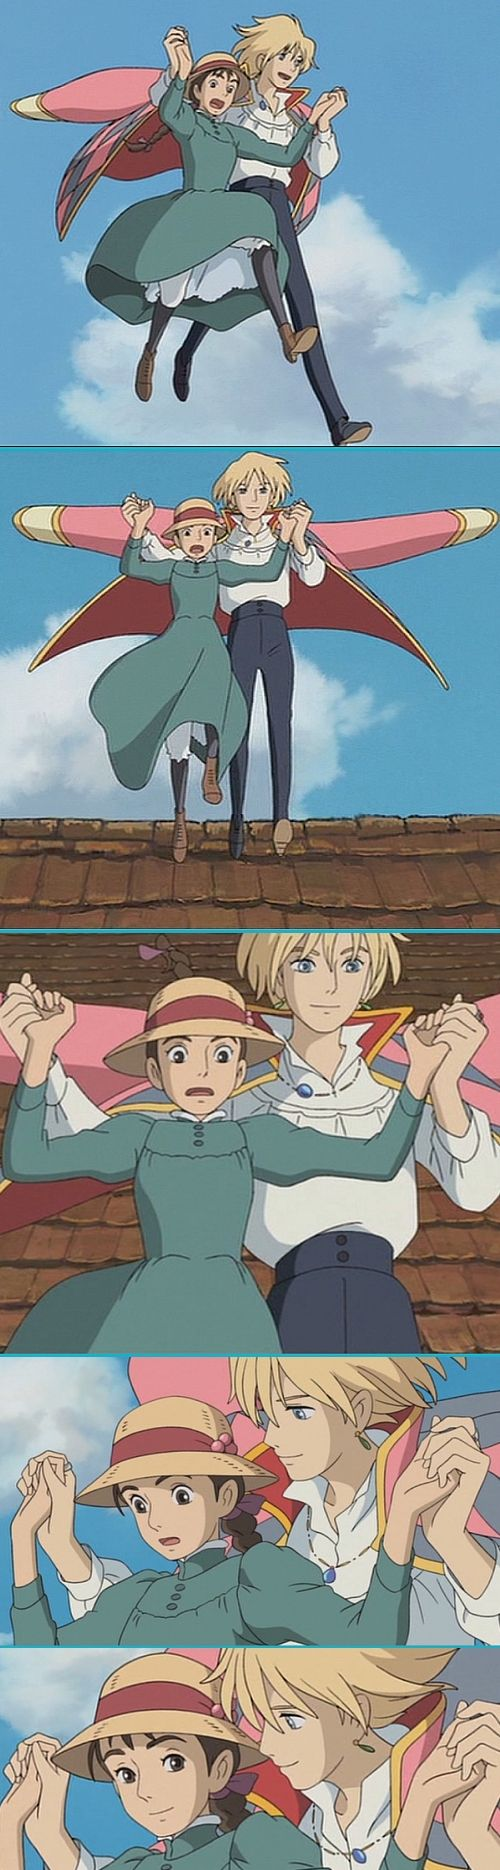 Howl's Moving Castle 3 ;)